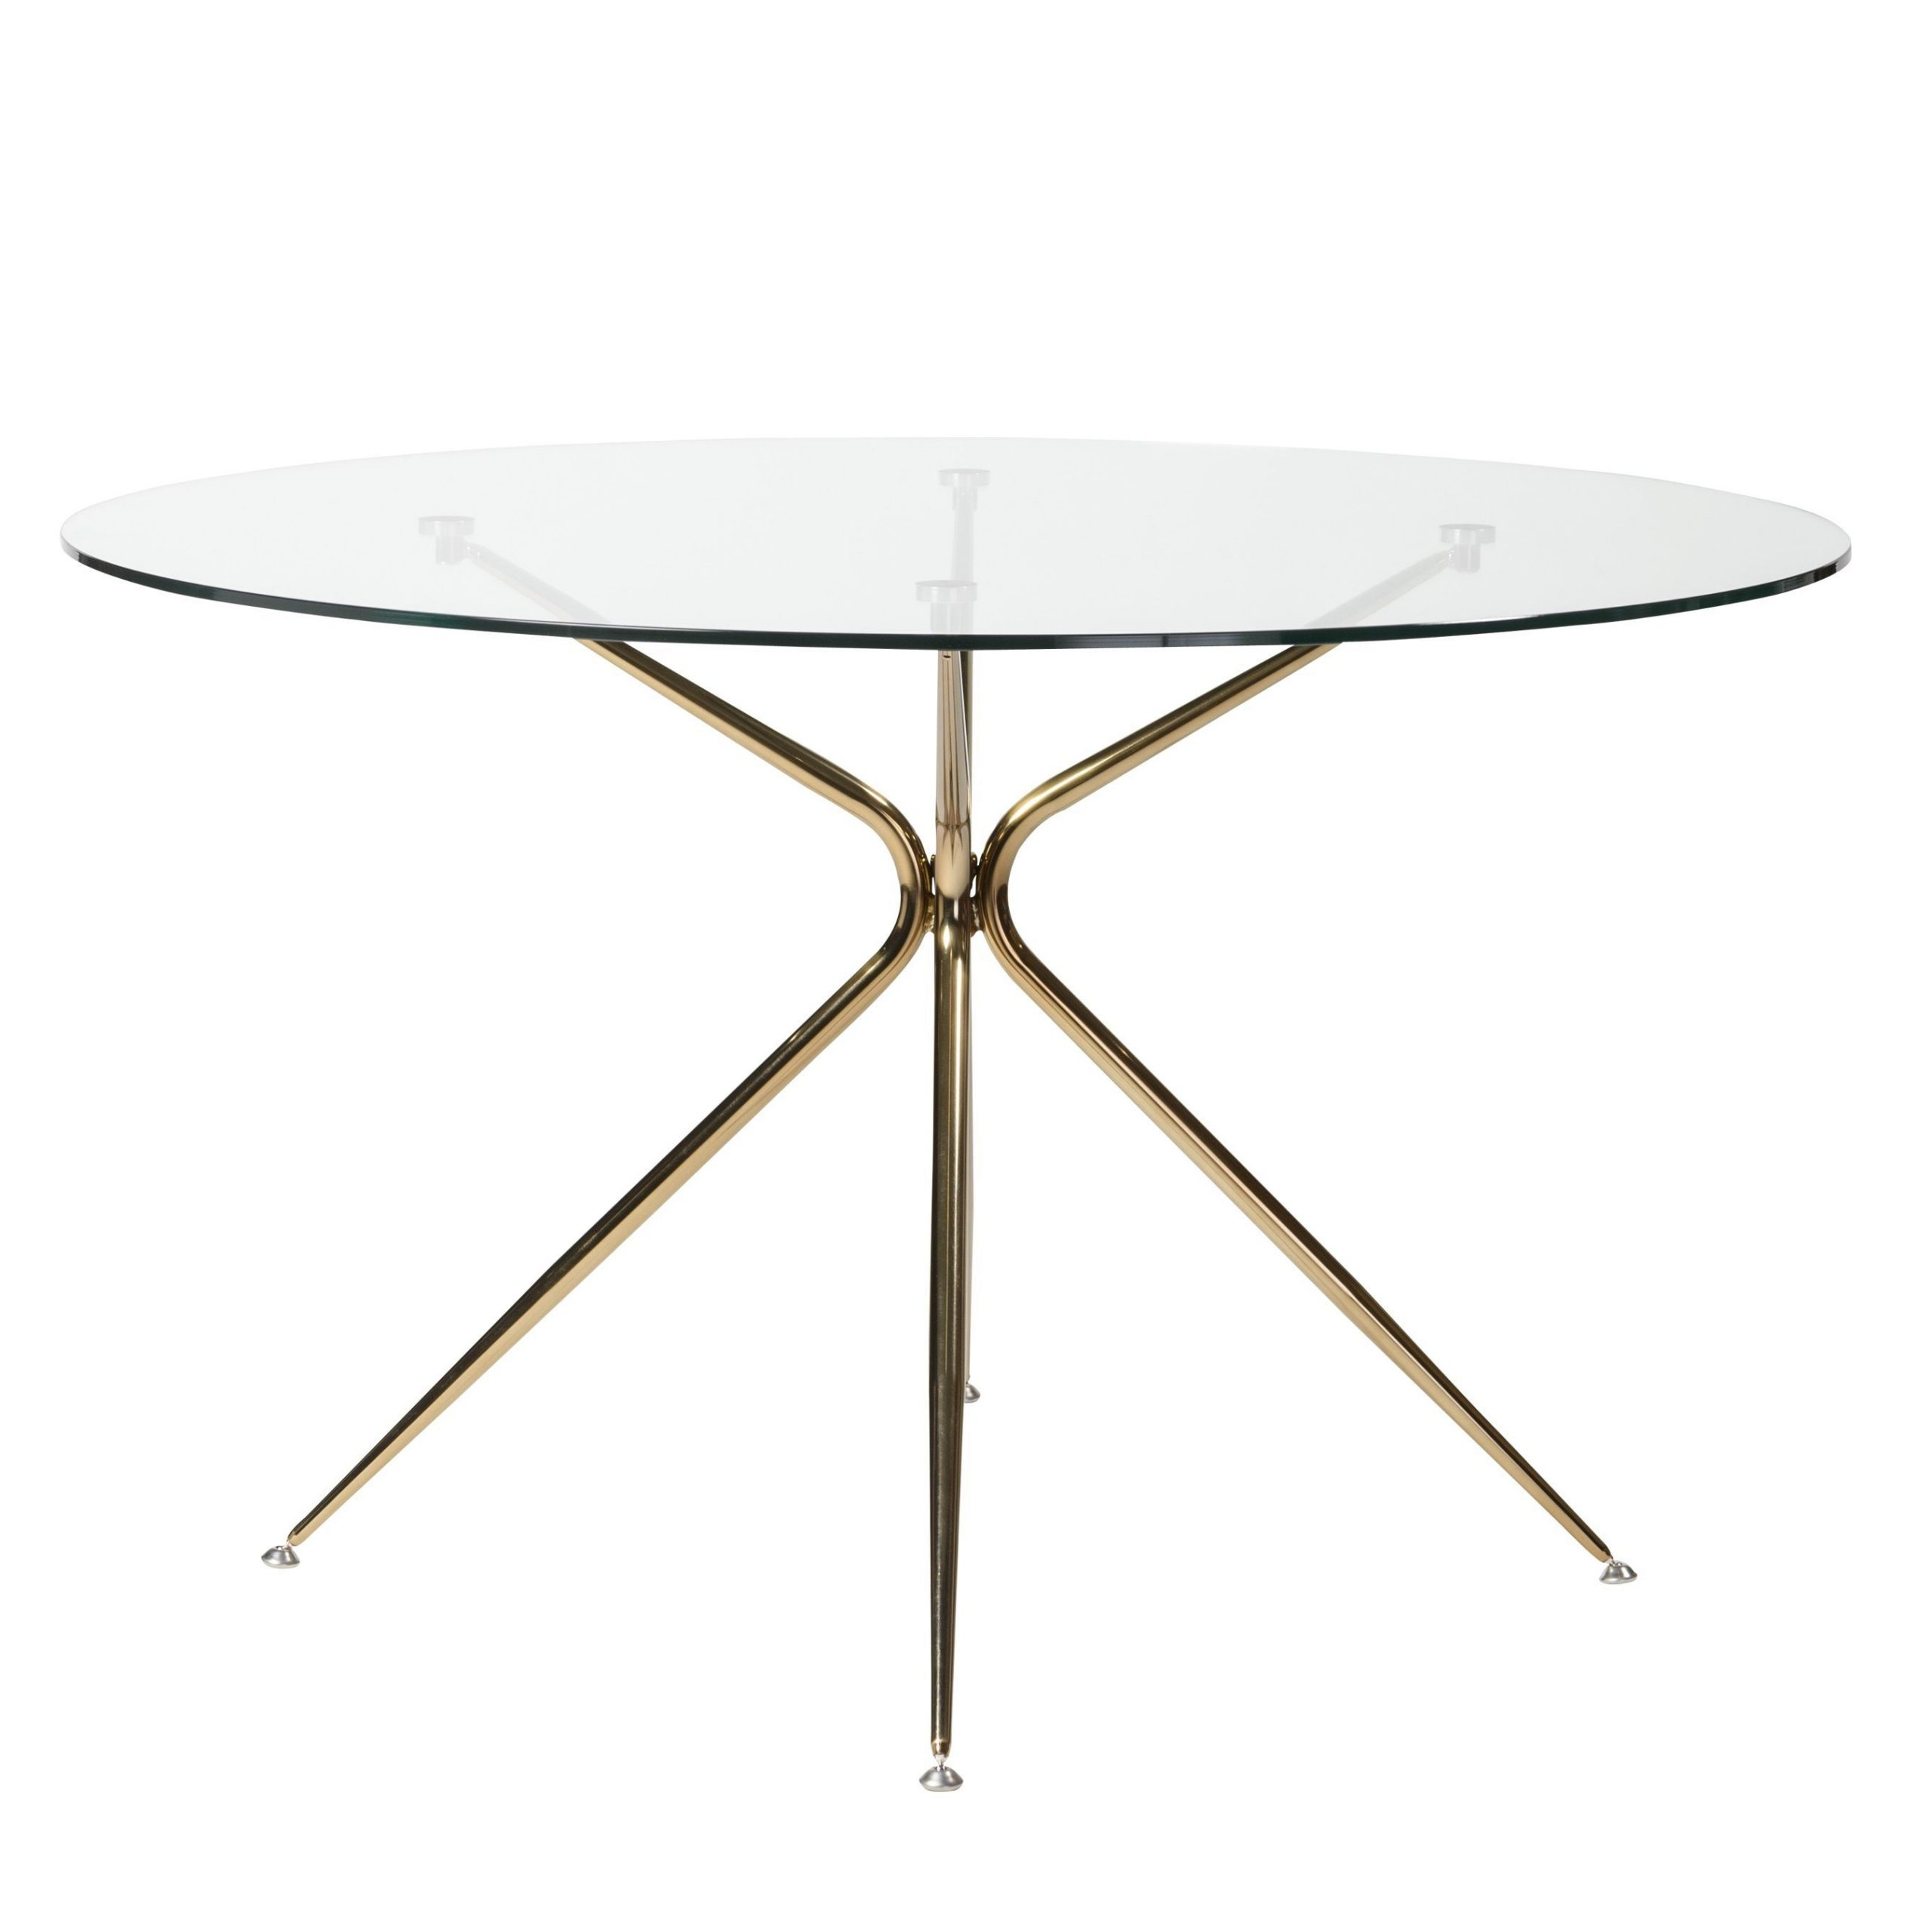 Newest Modern Gold Dining Tables With Clear Glass For Atos 48 Inch Round Dining Table (View 27 of 30)